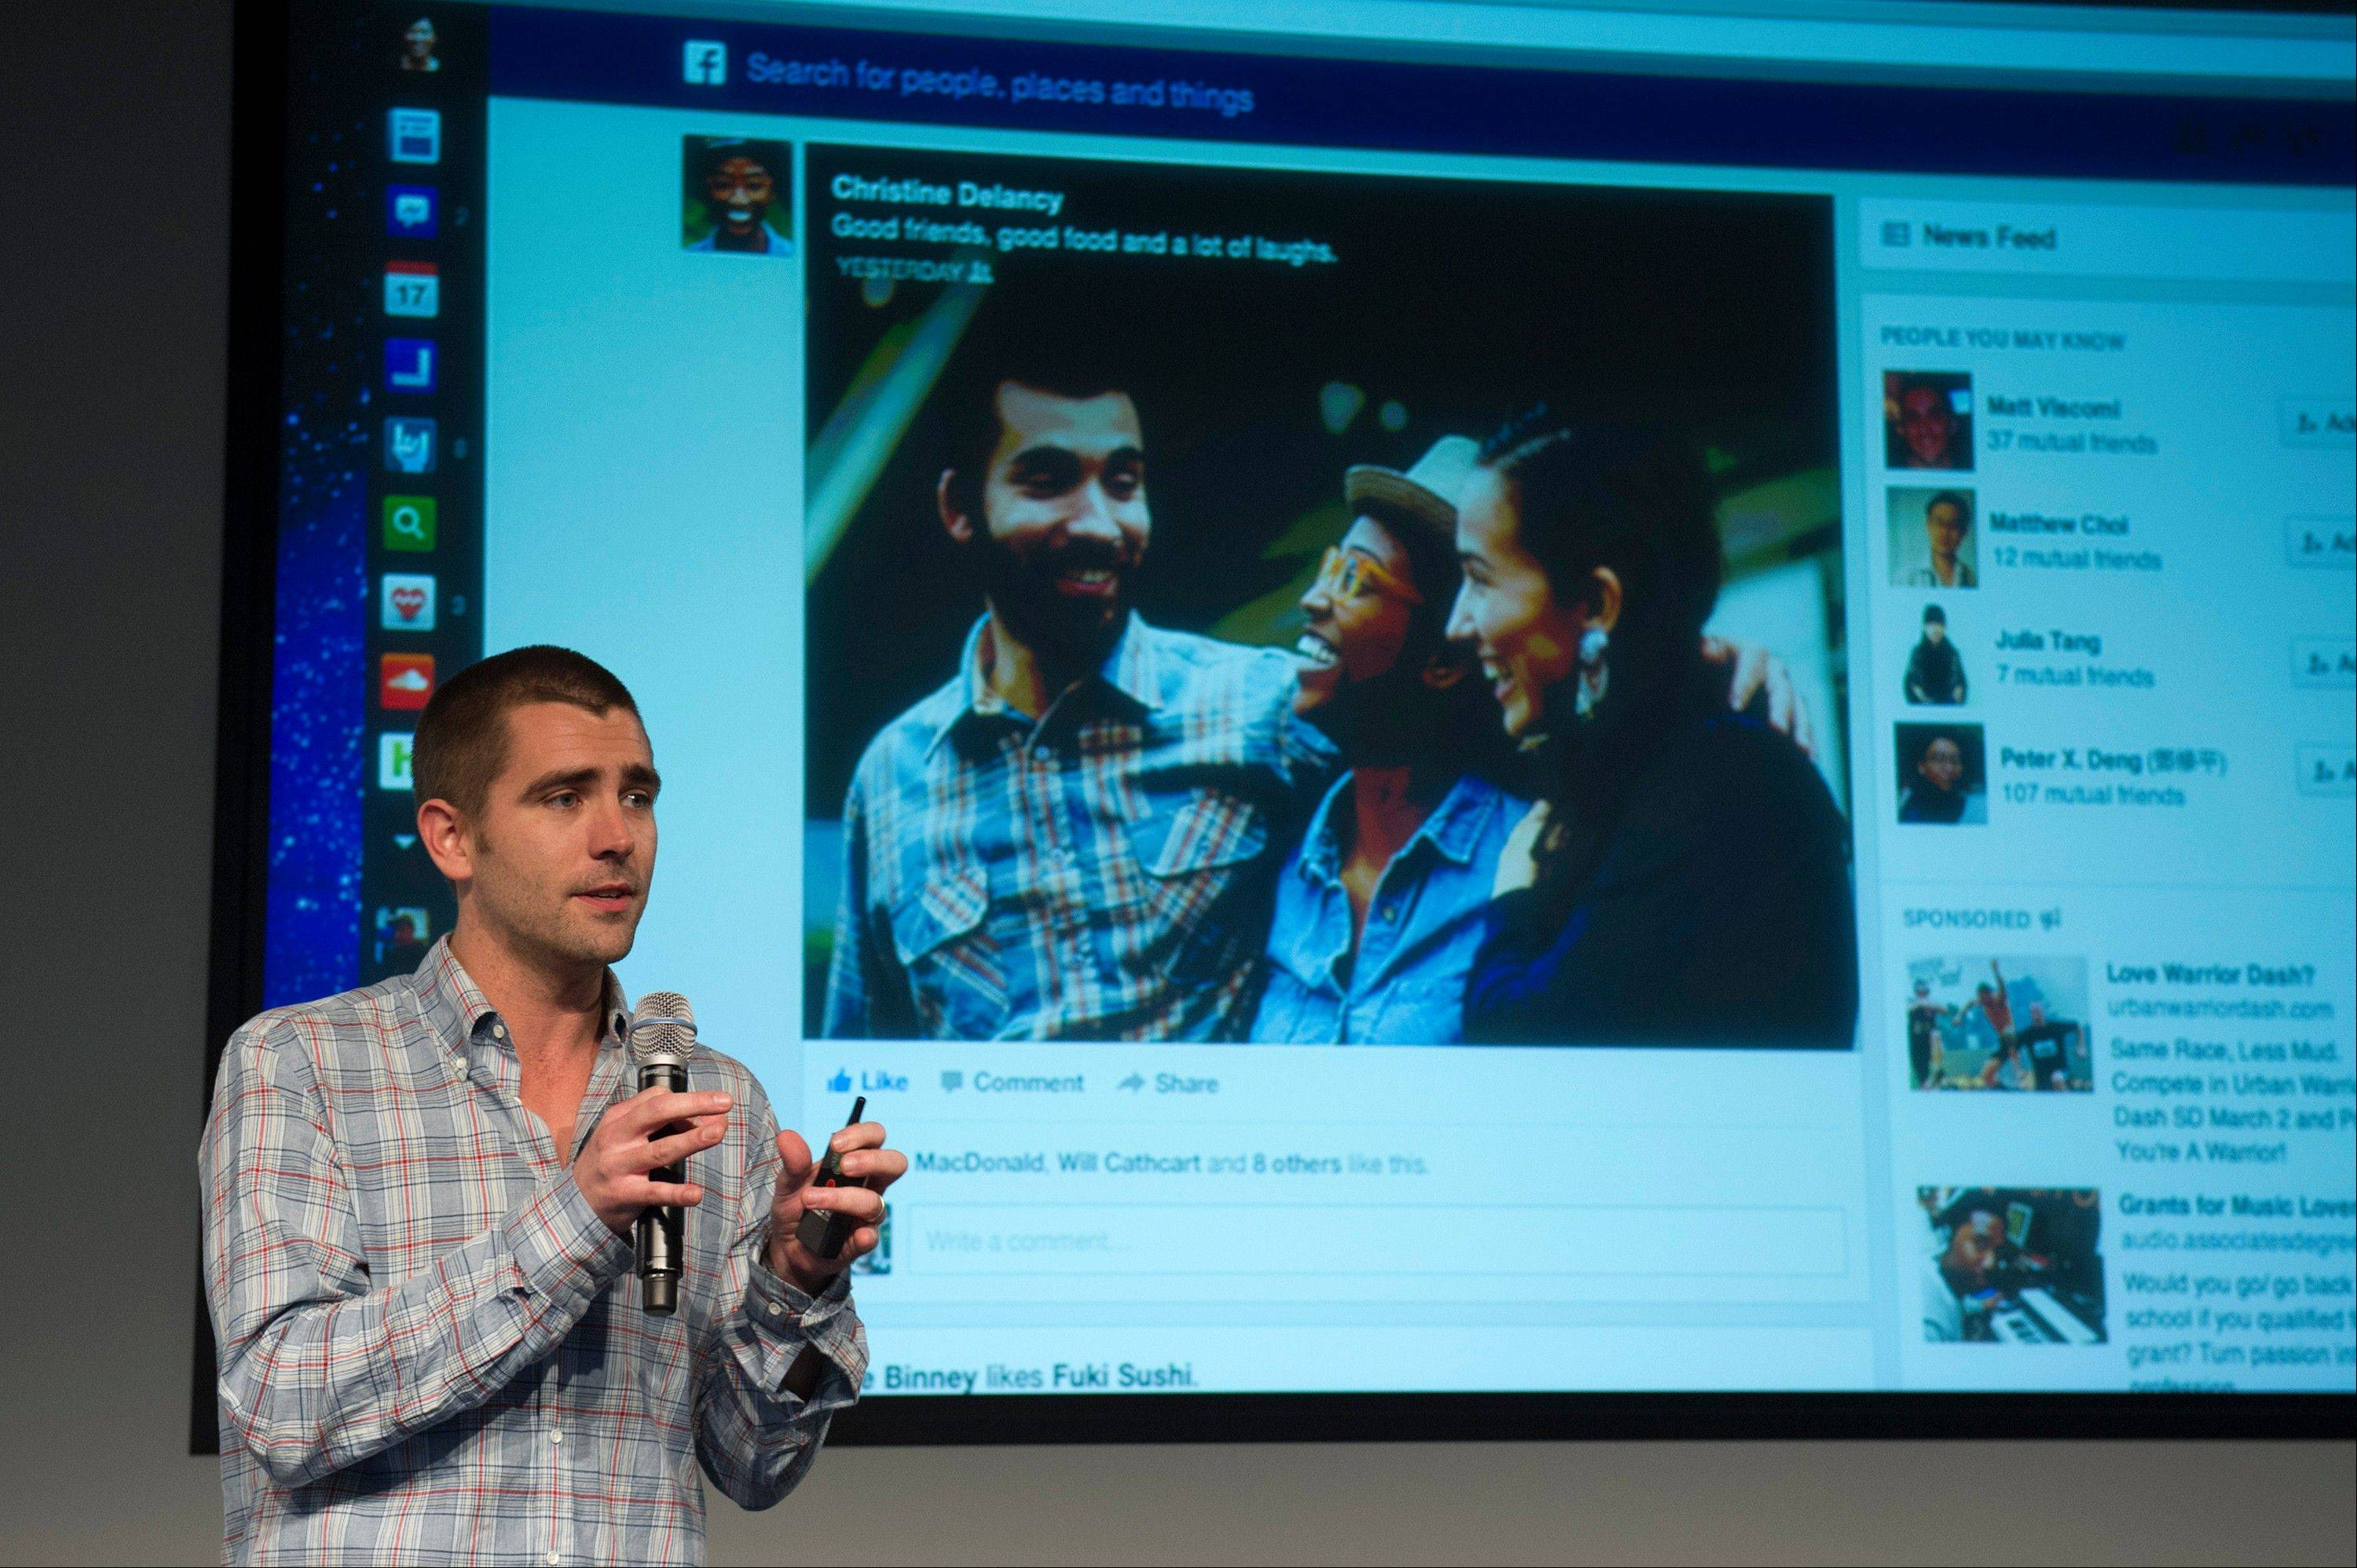 Chris Cox, vice president of product for Facebook Inc., speaks during an event at the company's headquarters in Menlo Park, California, U.S., on Thursday, March 7, 2013. Mark Zuckerberg, chief executive officer and founder of Facebook Inc., discussed the social-network site's upgraded News Feed which includes bigger photos, information sorted into topics and a more consistent design acros